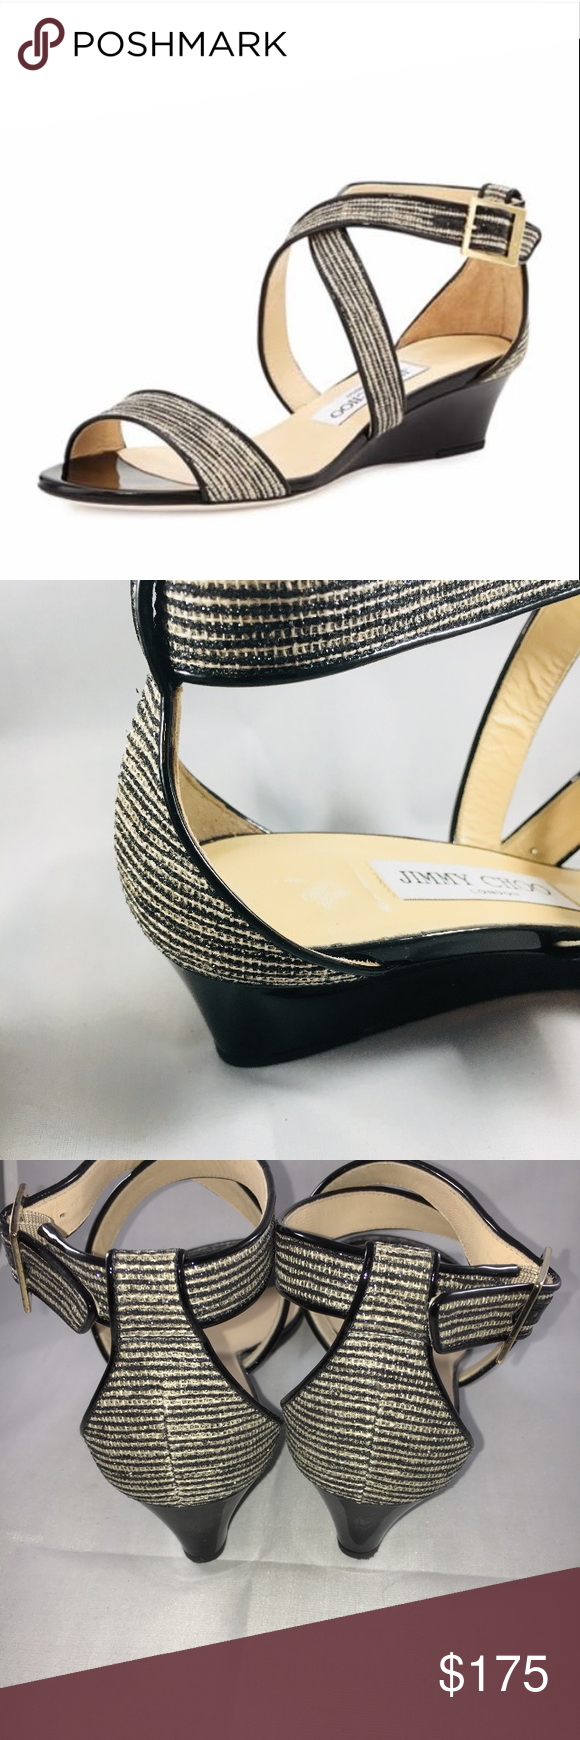 3aacd0c2255f Jimmy Choo Demi Wedge Sandal - US Size 7-1 2 Jimmy Choo Chiara Glitter  Crisscross Demi Wedge Sandal - Euro Size 37-1 2 US Size 7-1 2 Gently loved  - ready ...